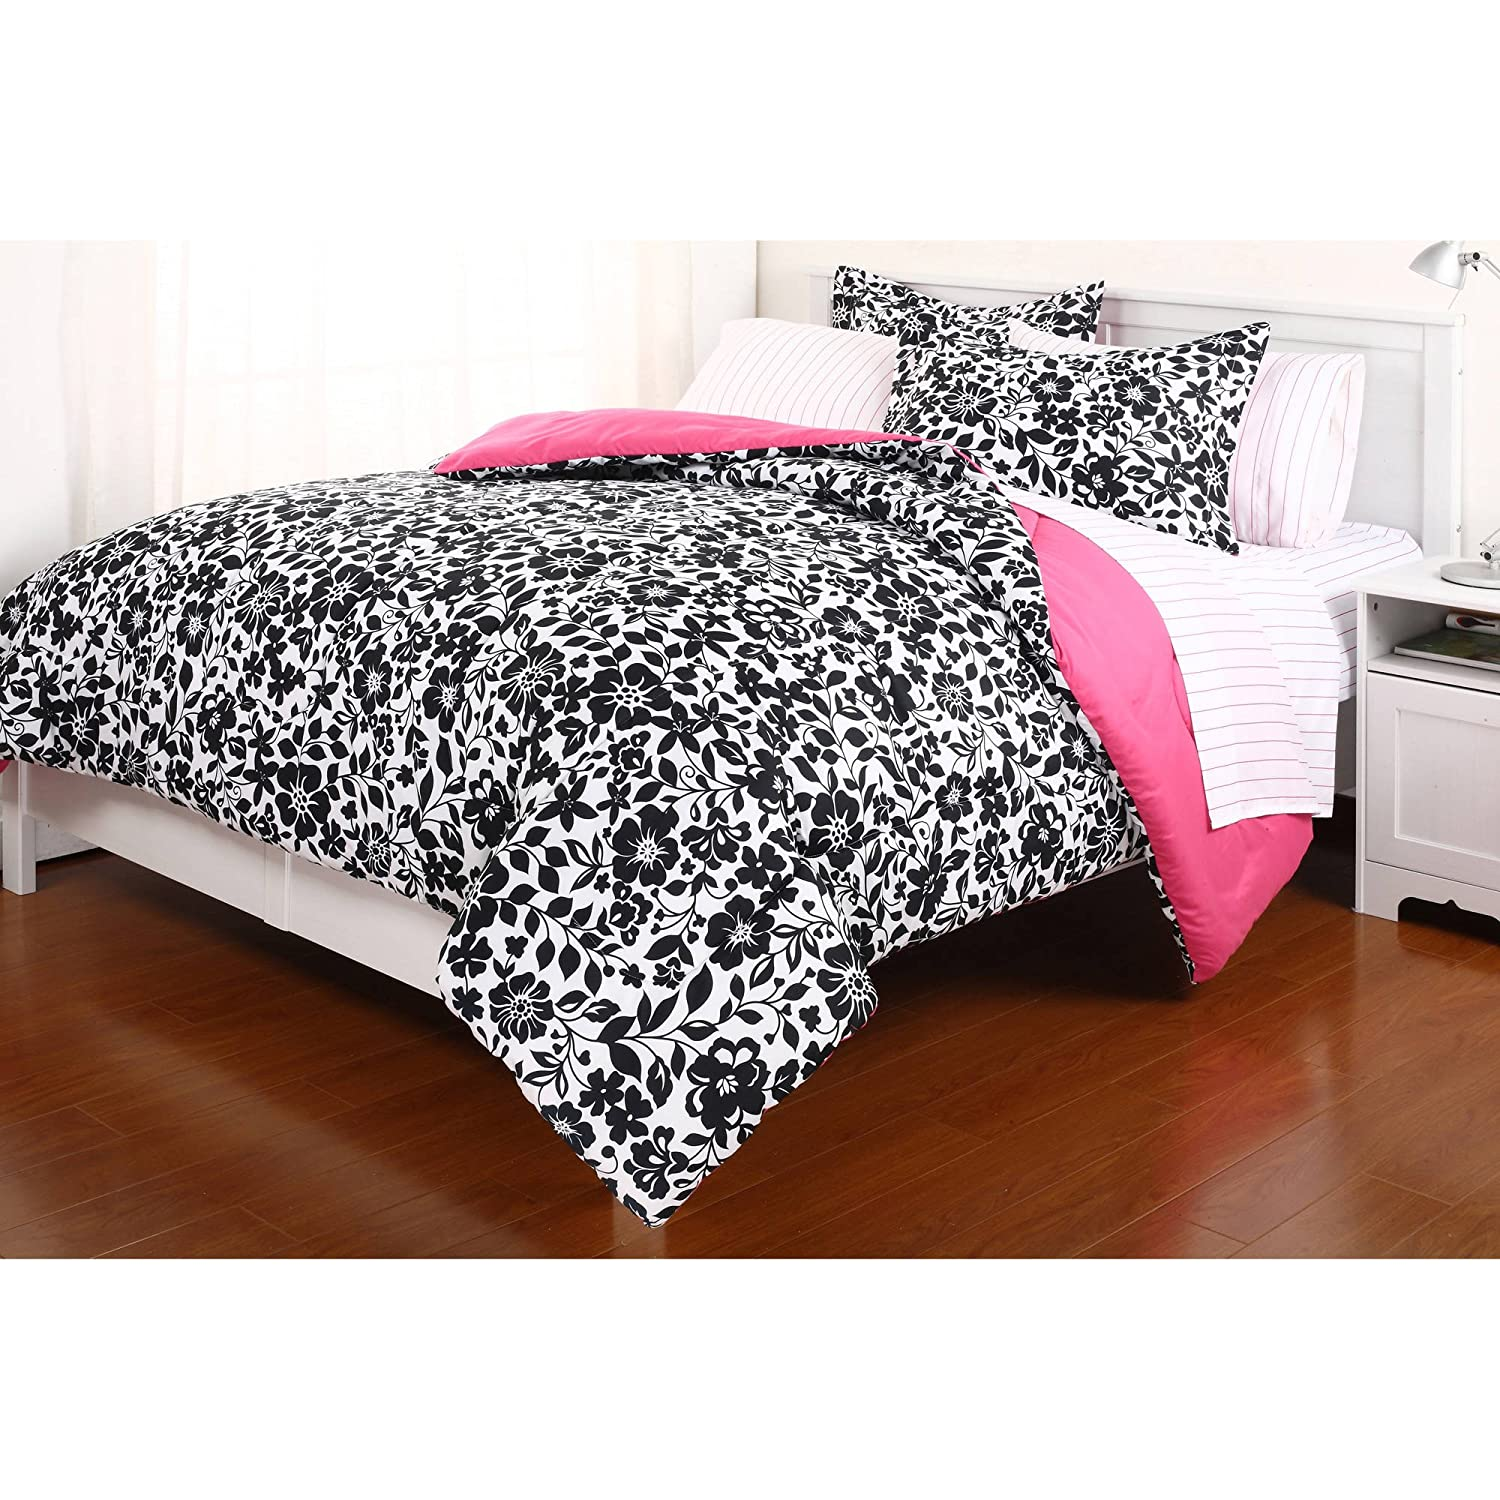 pink and black bedding sets ease bedding with style. Black Bedroom Furniture Sets. Home Design Ideas